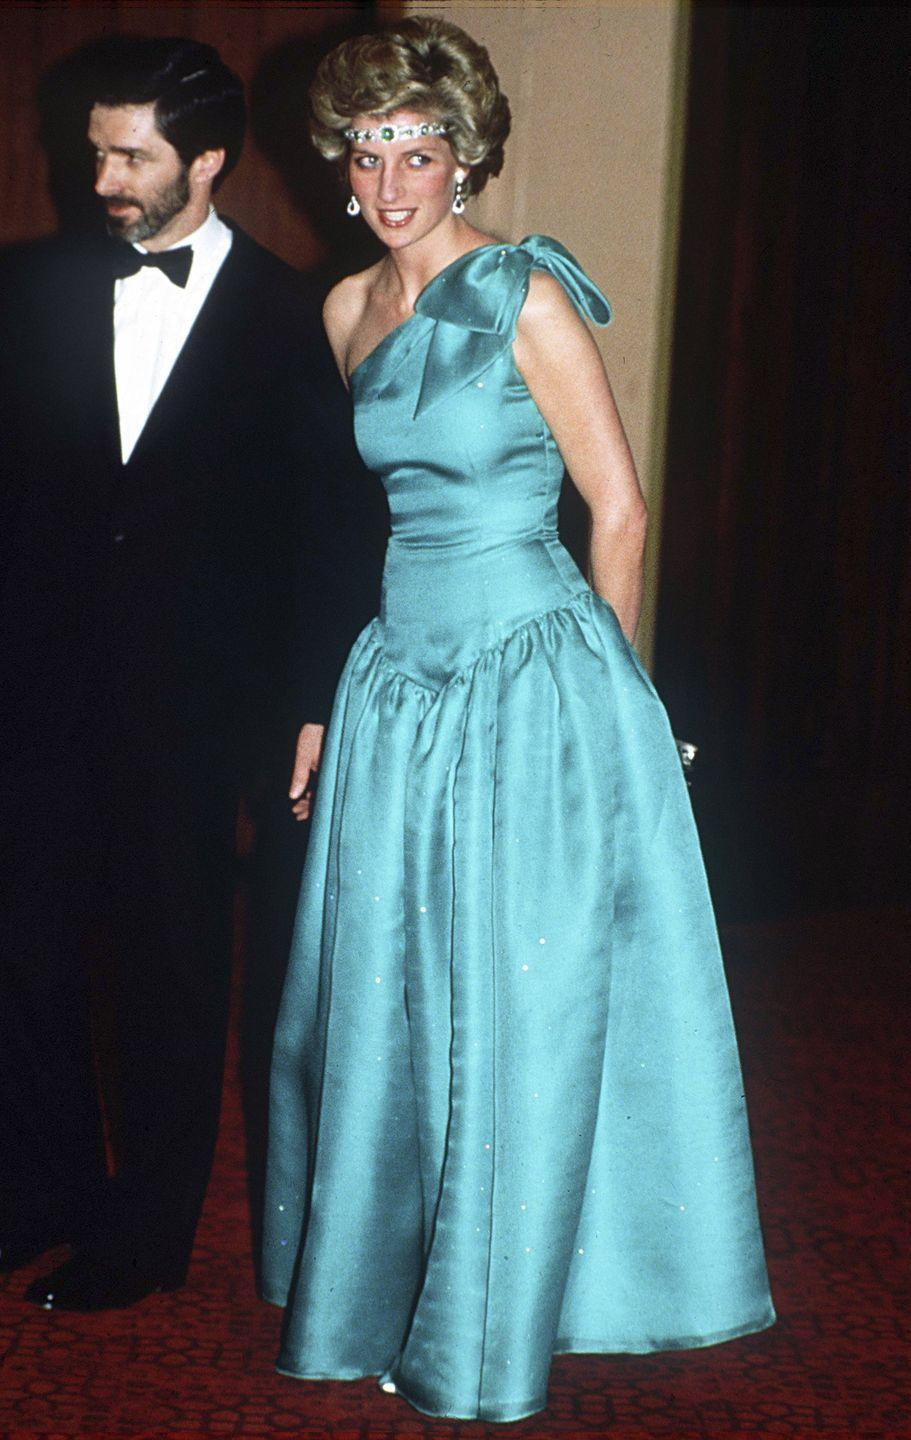 "<p>Princess Diana wore an asymmetrical satin ball gown in Melbourne, Australia. The royal topped the teal dress off with earrings and <a href=""https://royalwatcherblog.com/2017/08/20/queen-marys-art-deco-emerald-choker/"" rel=""nofollow noopener"" target=""_blank"" data-ylk=""slk:Queen Mary's art deco emerald and diamond choker"" class=""link rapid-noclick-resp"">Queen Mary's art deco emerald and diamond choker</a>, which she wore as a headband. </p>"